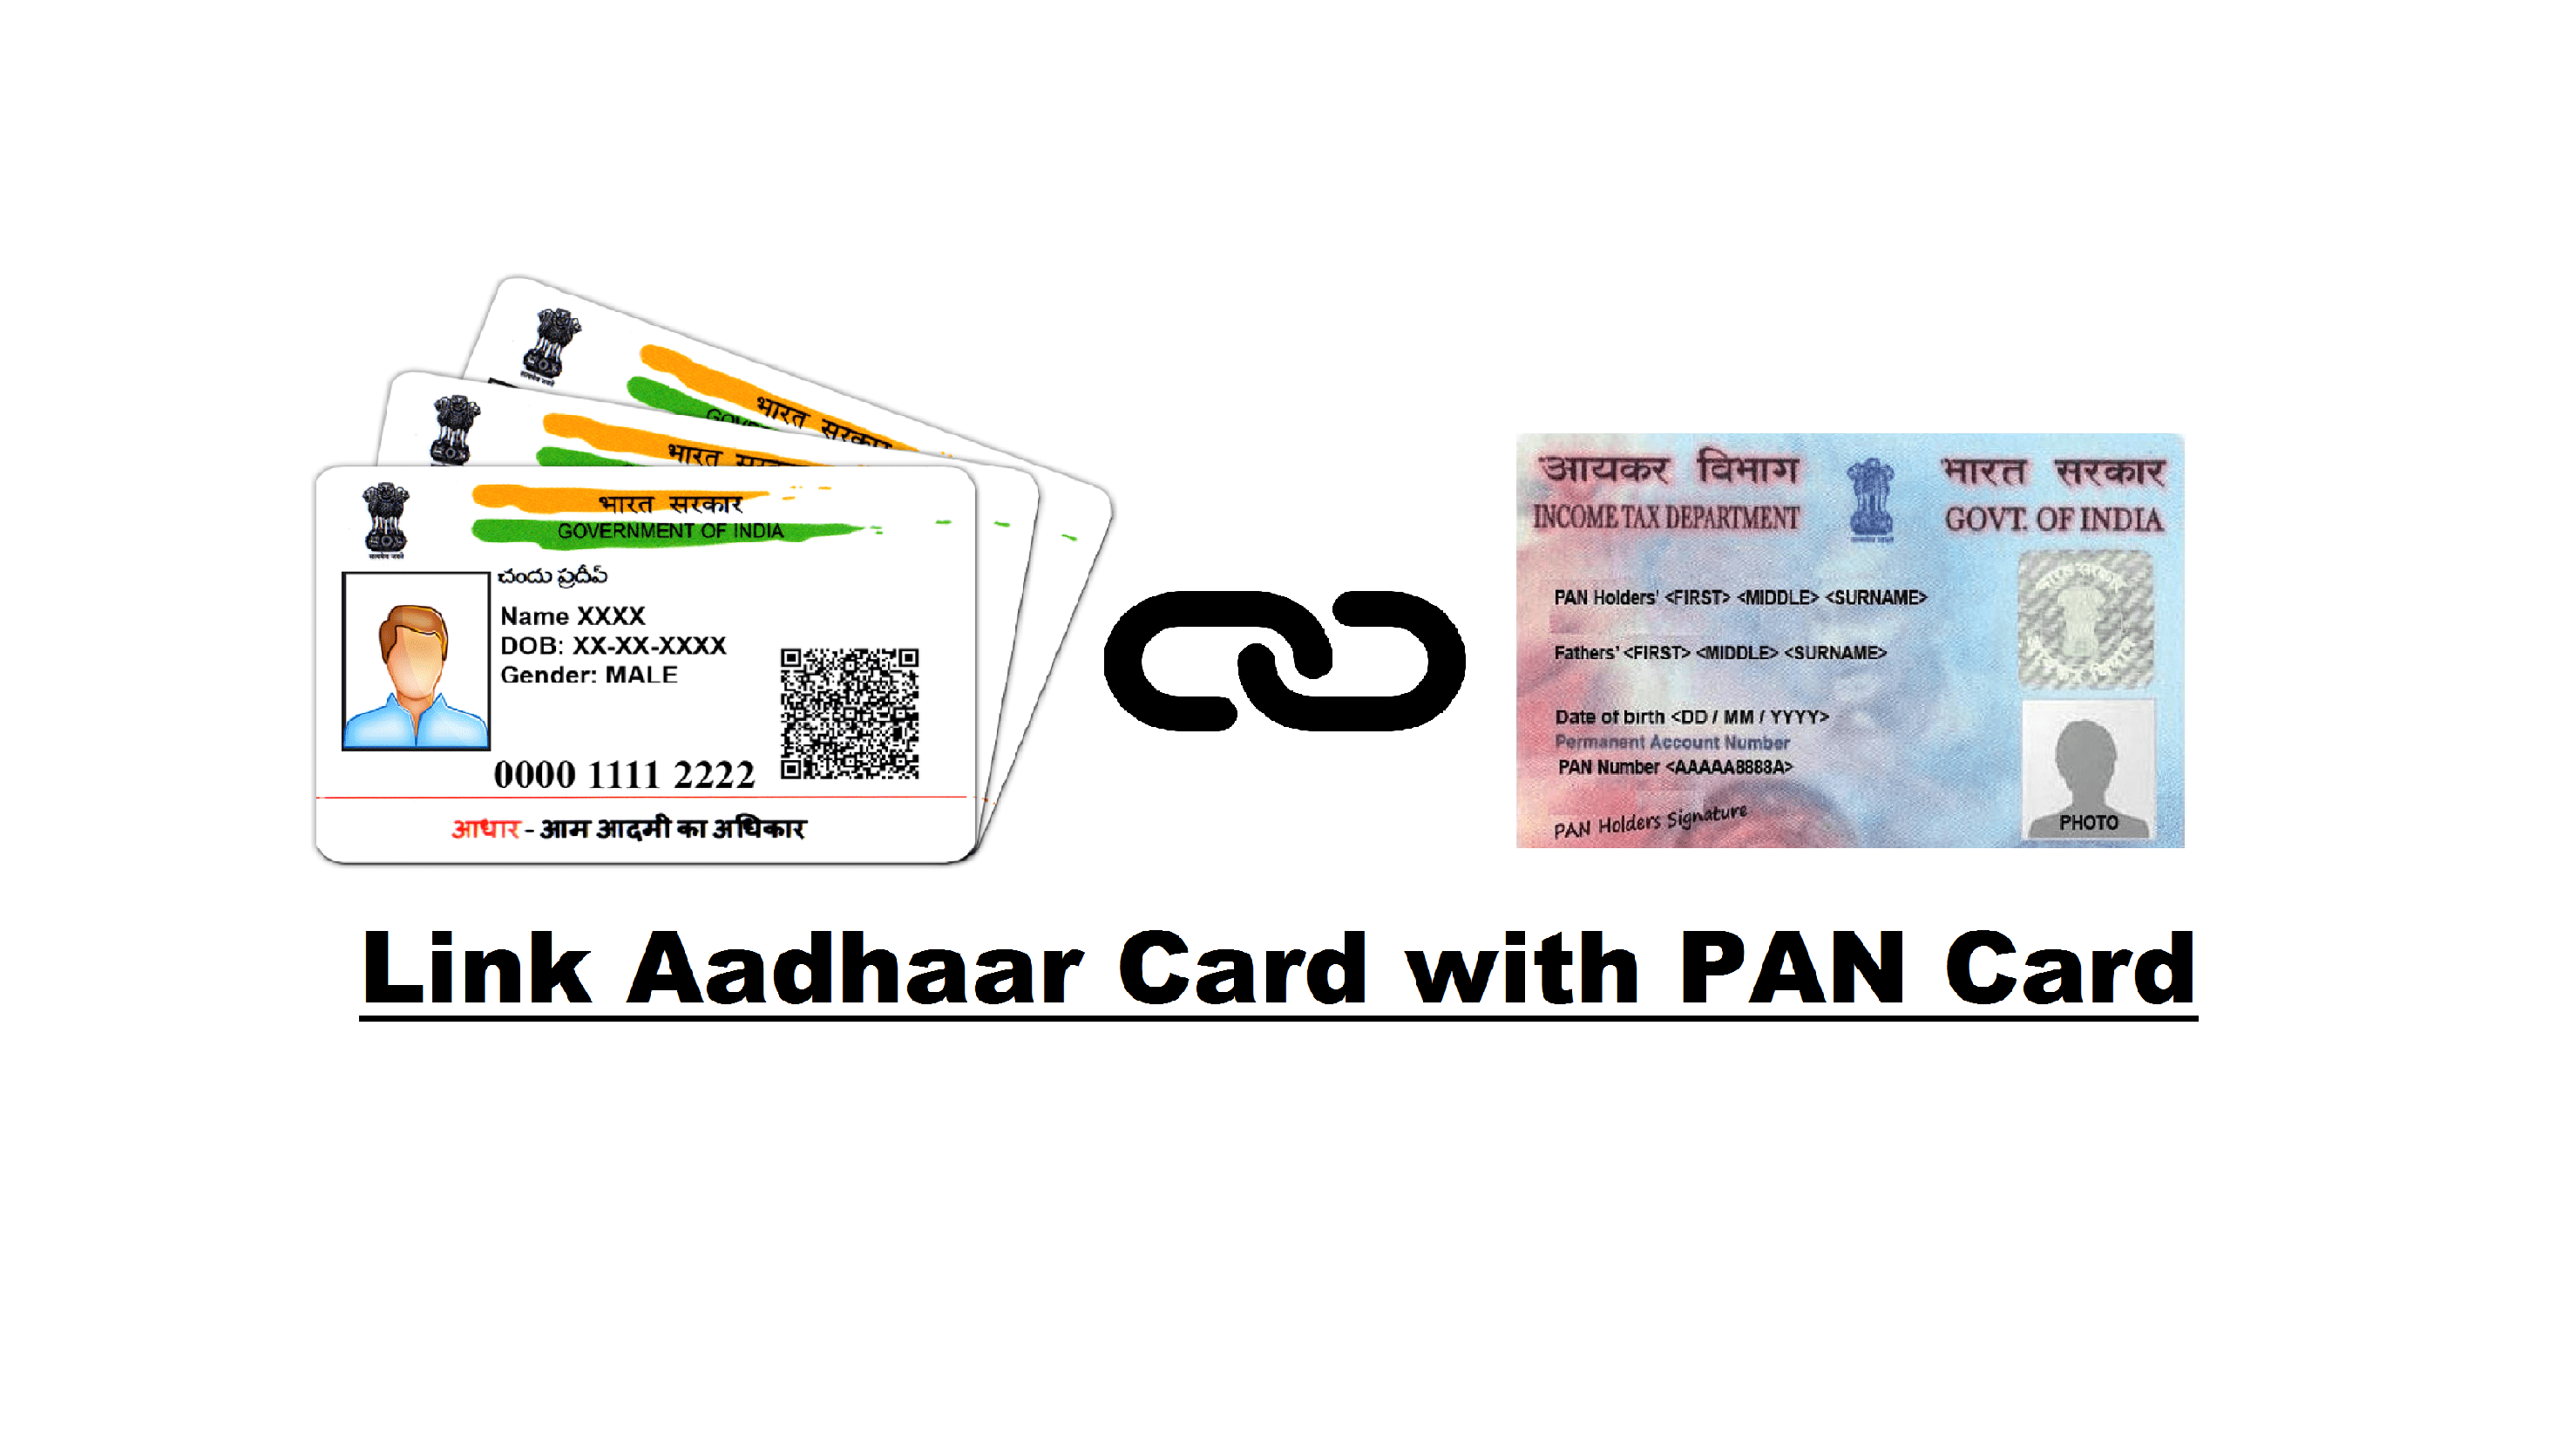 bb94d53316e67414b4c409d133f8ef87 - How To Get A Soft Copy Of Aadhar Card